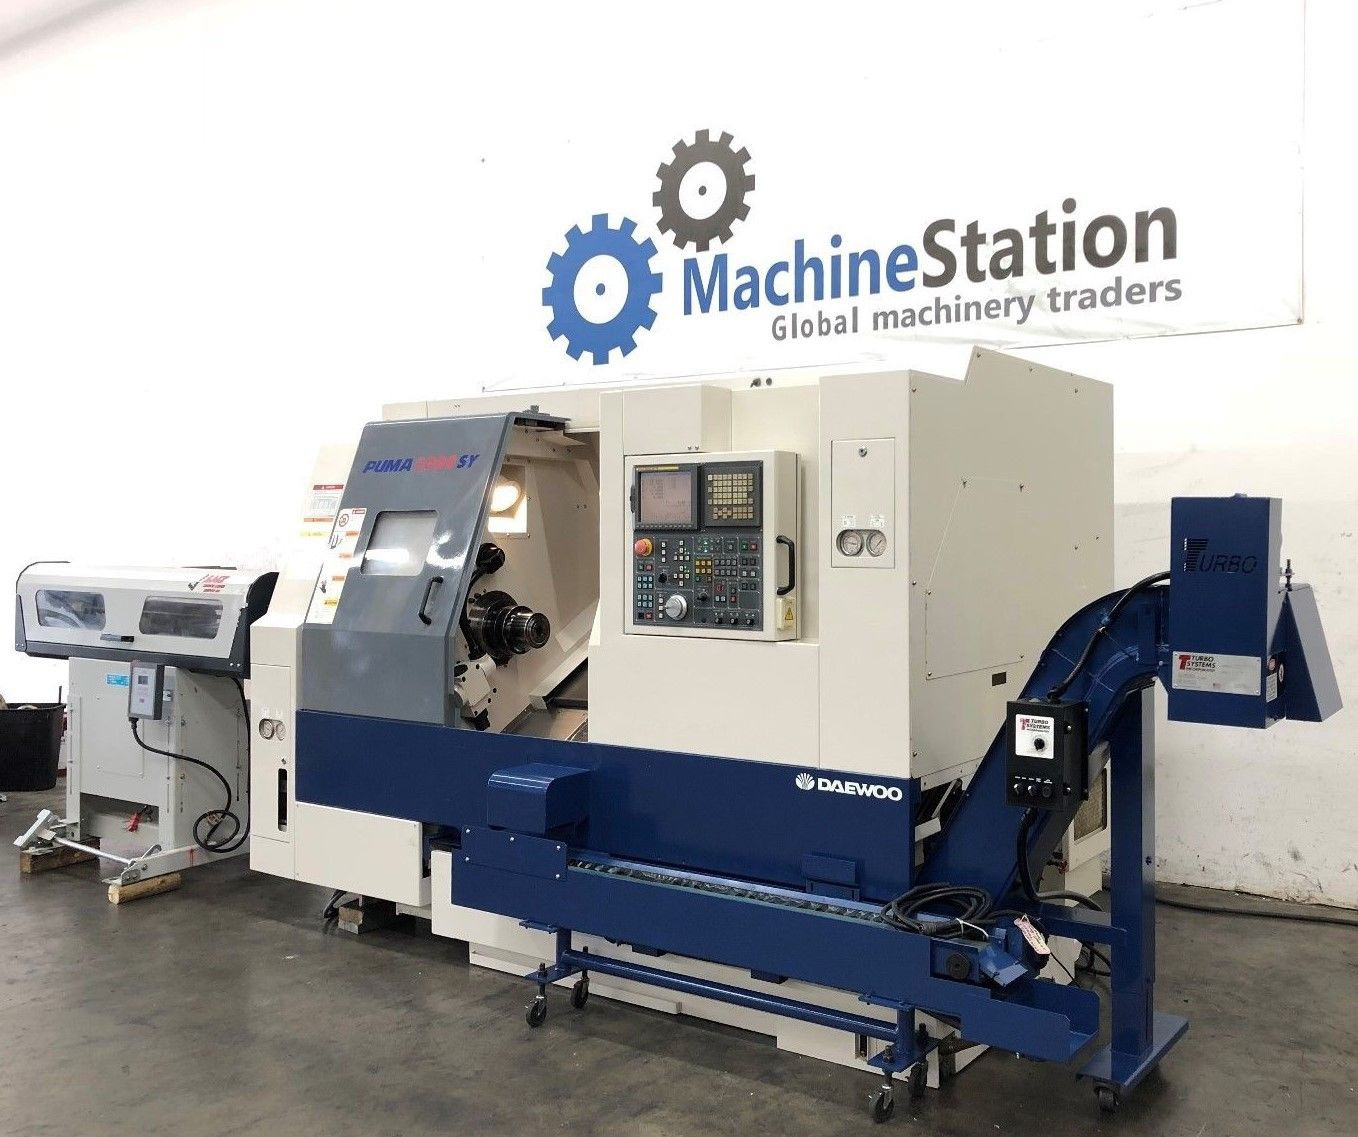 Daewoo Puma 2000SY CNC Turn Mill Center - MachineStation